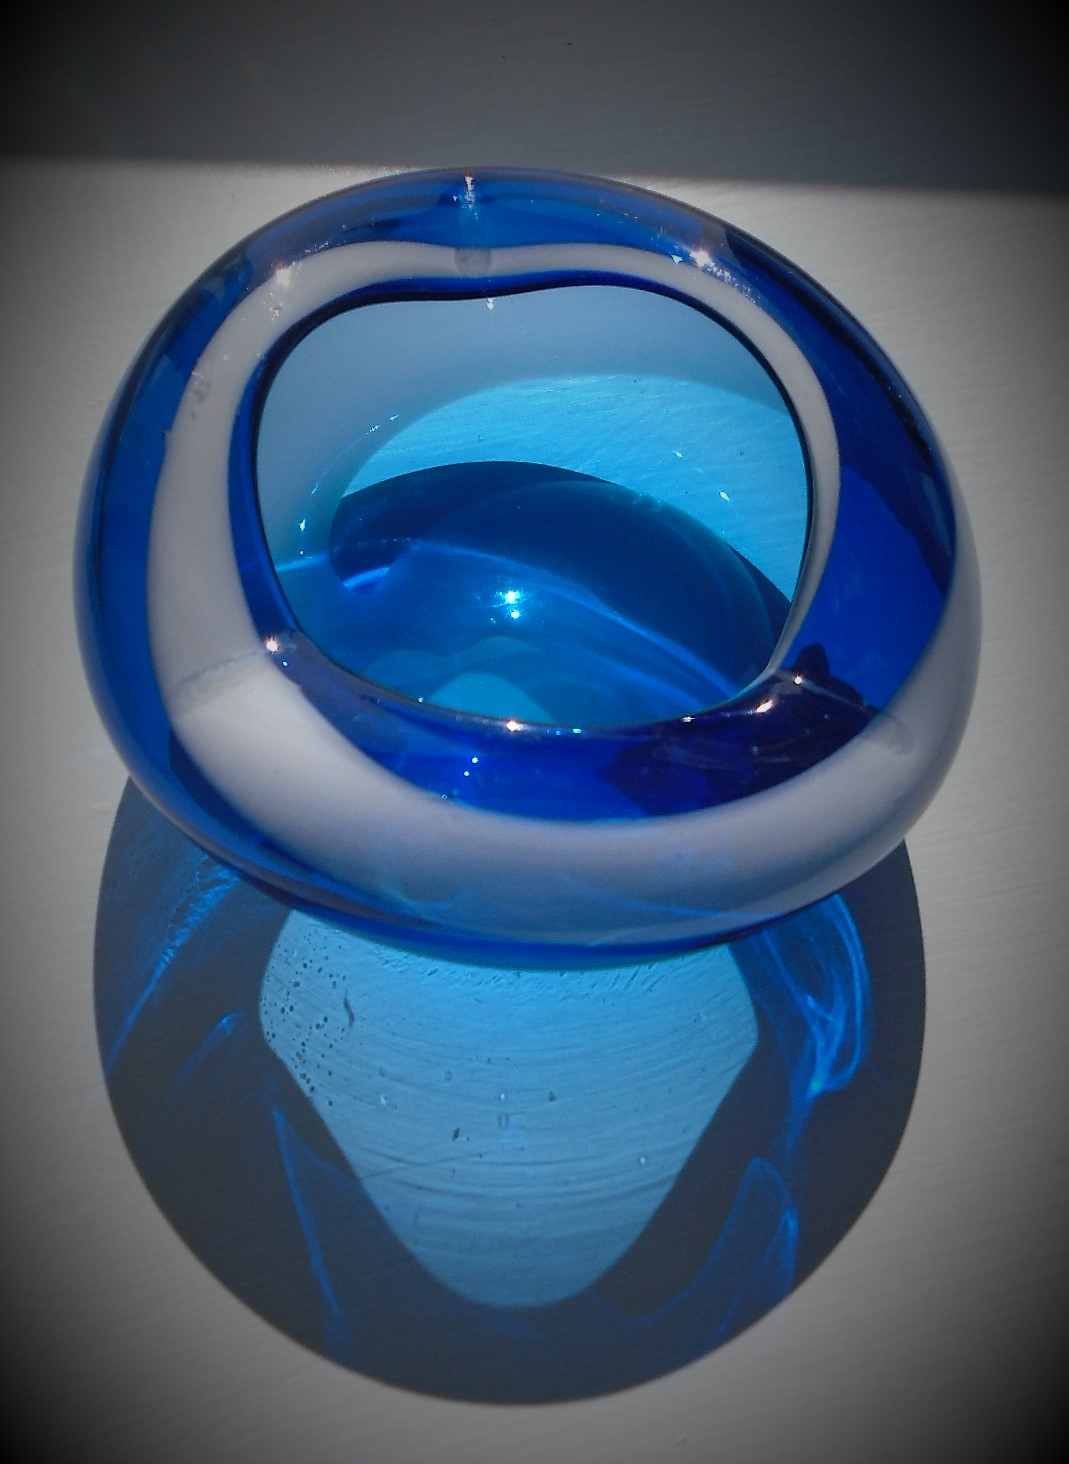 Offered for sale is a pretty vintage blue glass Murano bowl with a white glass stripe decoration